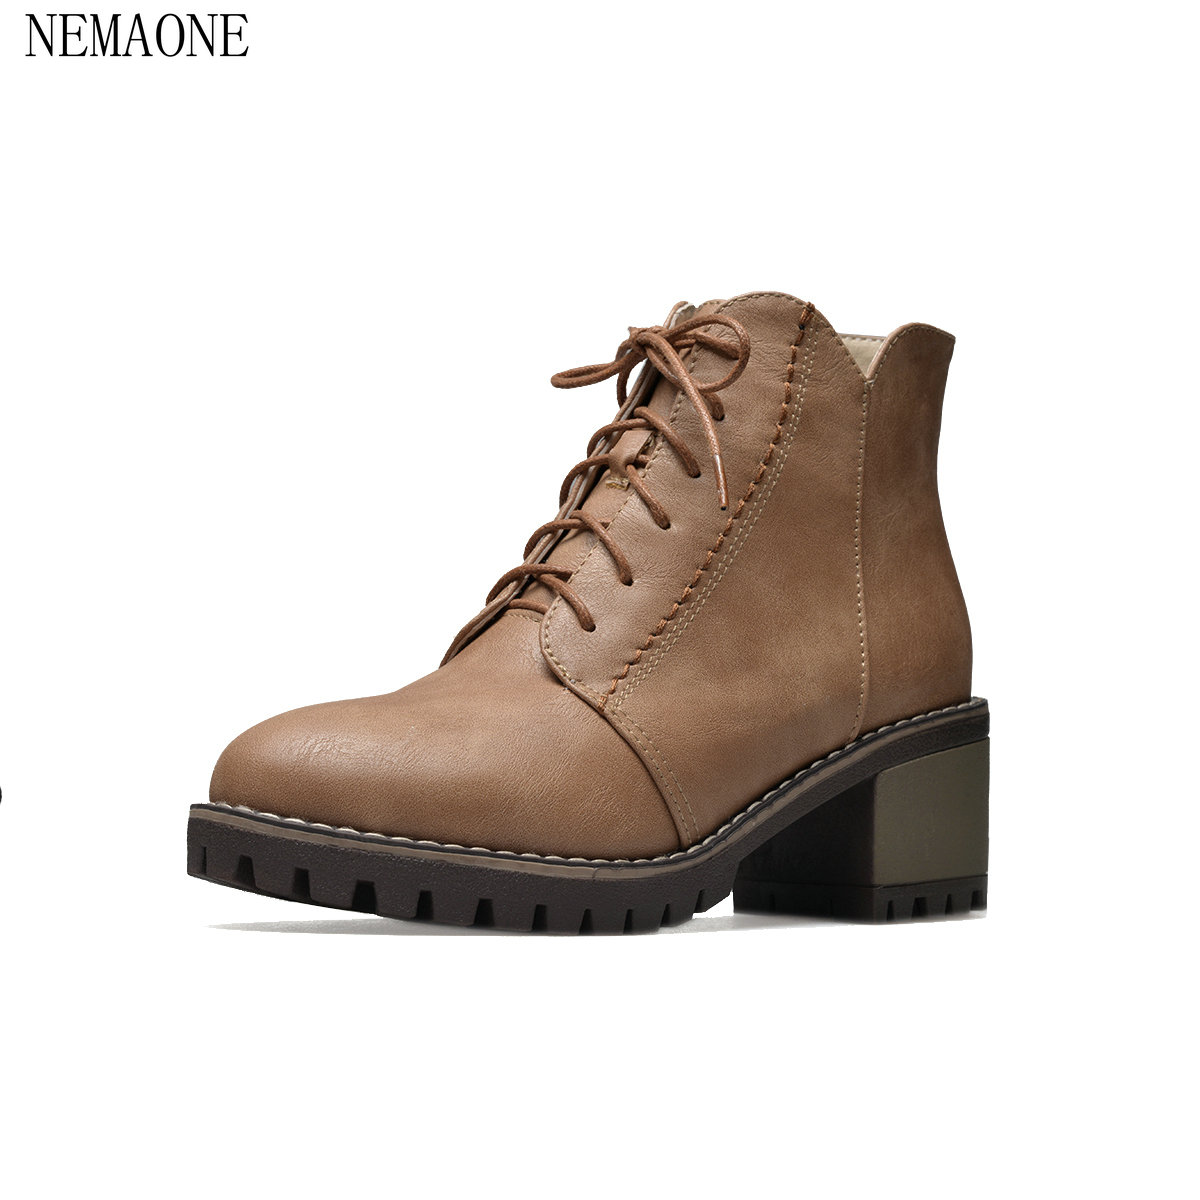 NEMAONE Shoes Woman pu Leather Platform Square High Heel Lace Up Ankle Boots Fashion Dress Winter Boots Black